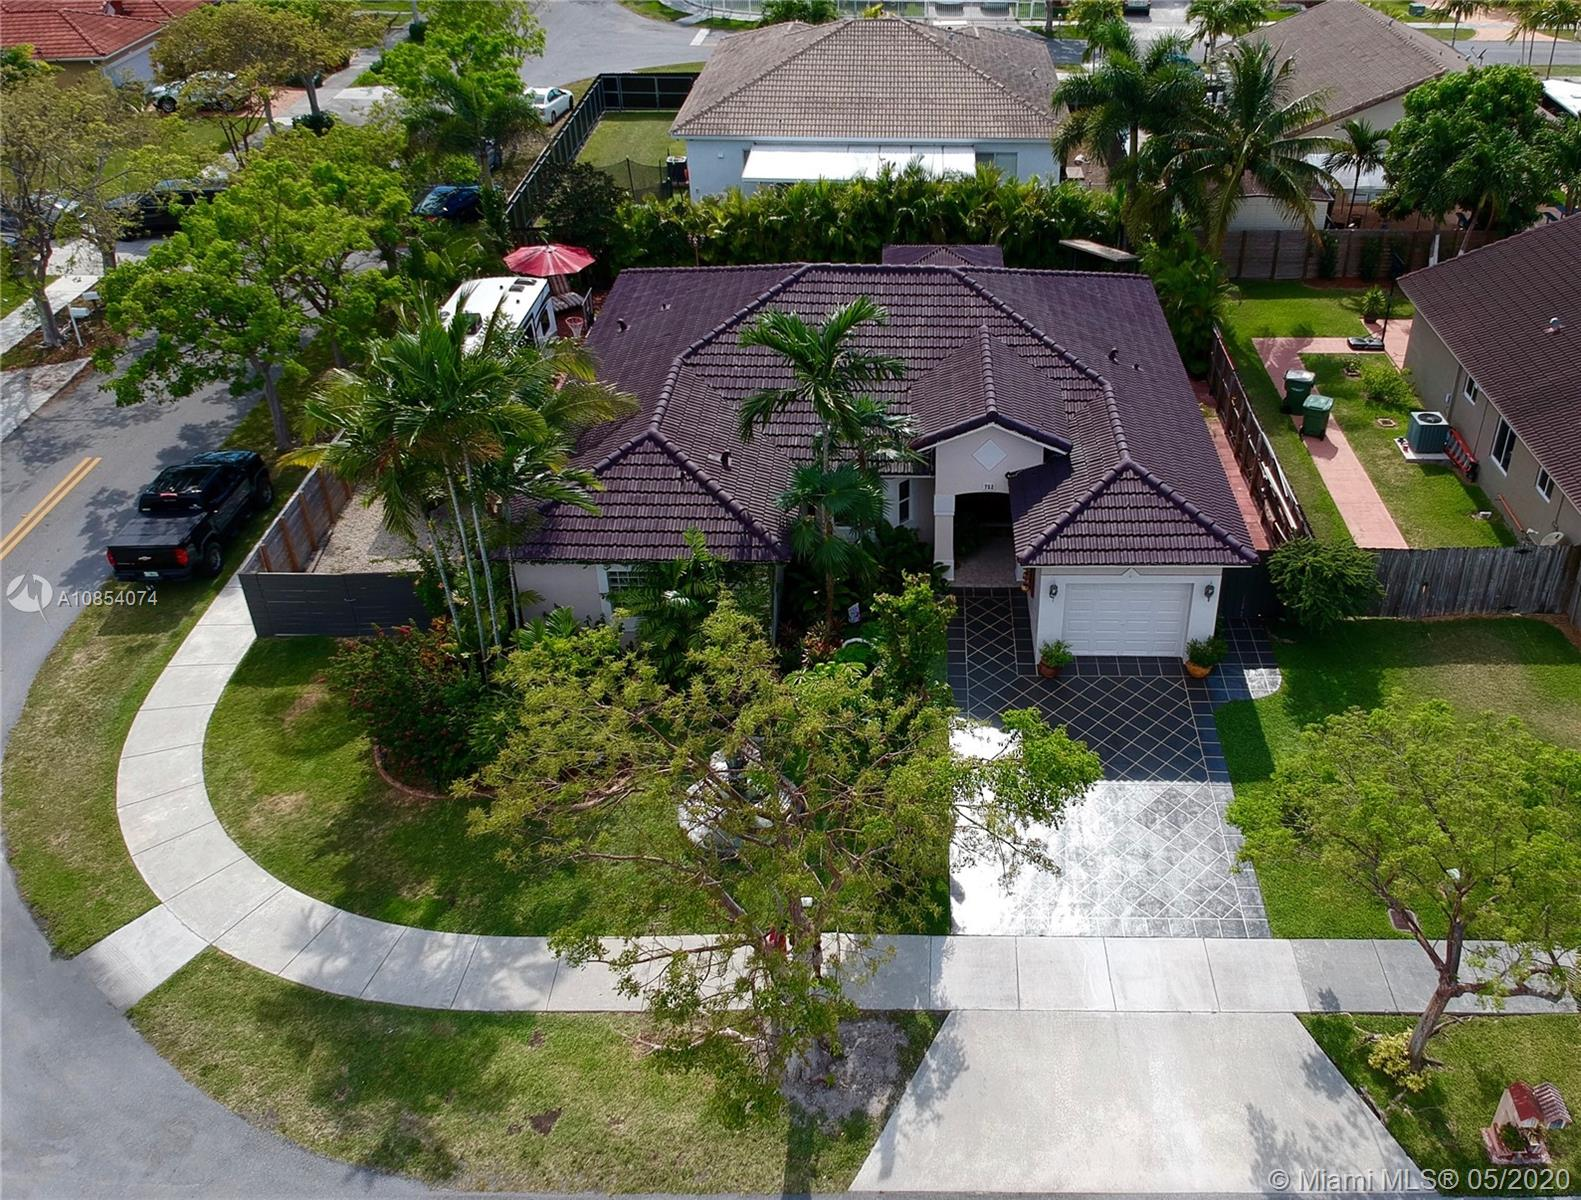 712 SE 14th Ave, Homestead, Florida 33033, 3 Bedrooms Bedrooms, ,2 BathroomsBathrooms,Residential,For Sale,712 SE 14th Ave,A10854074